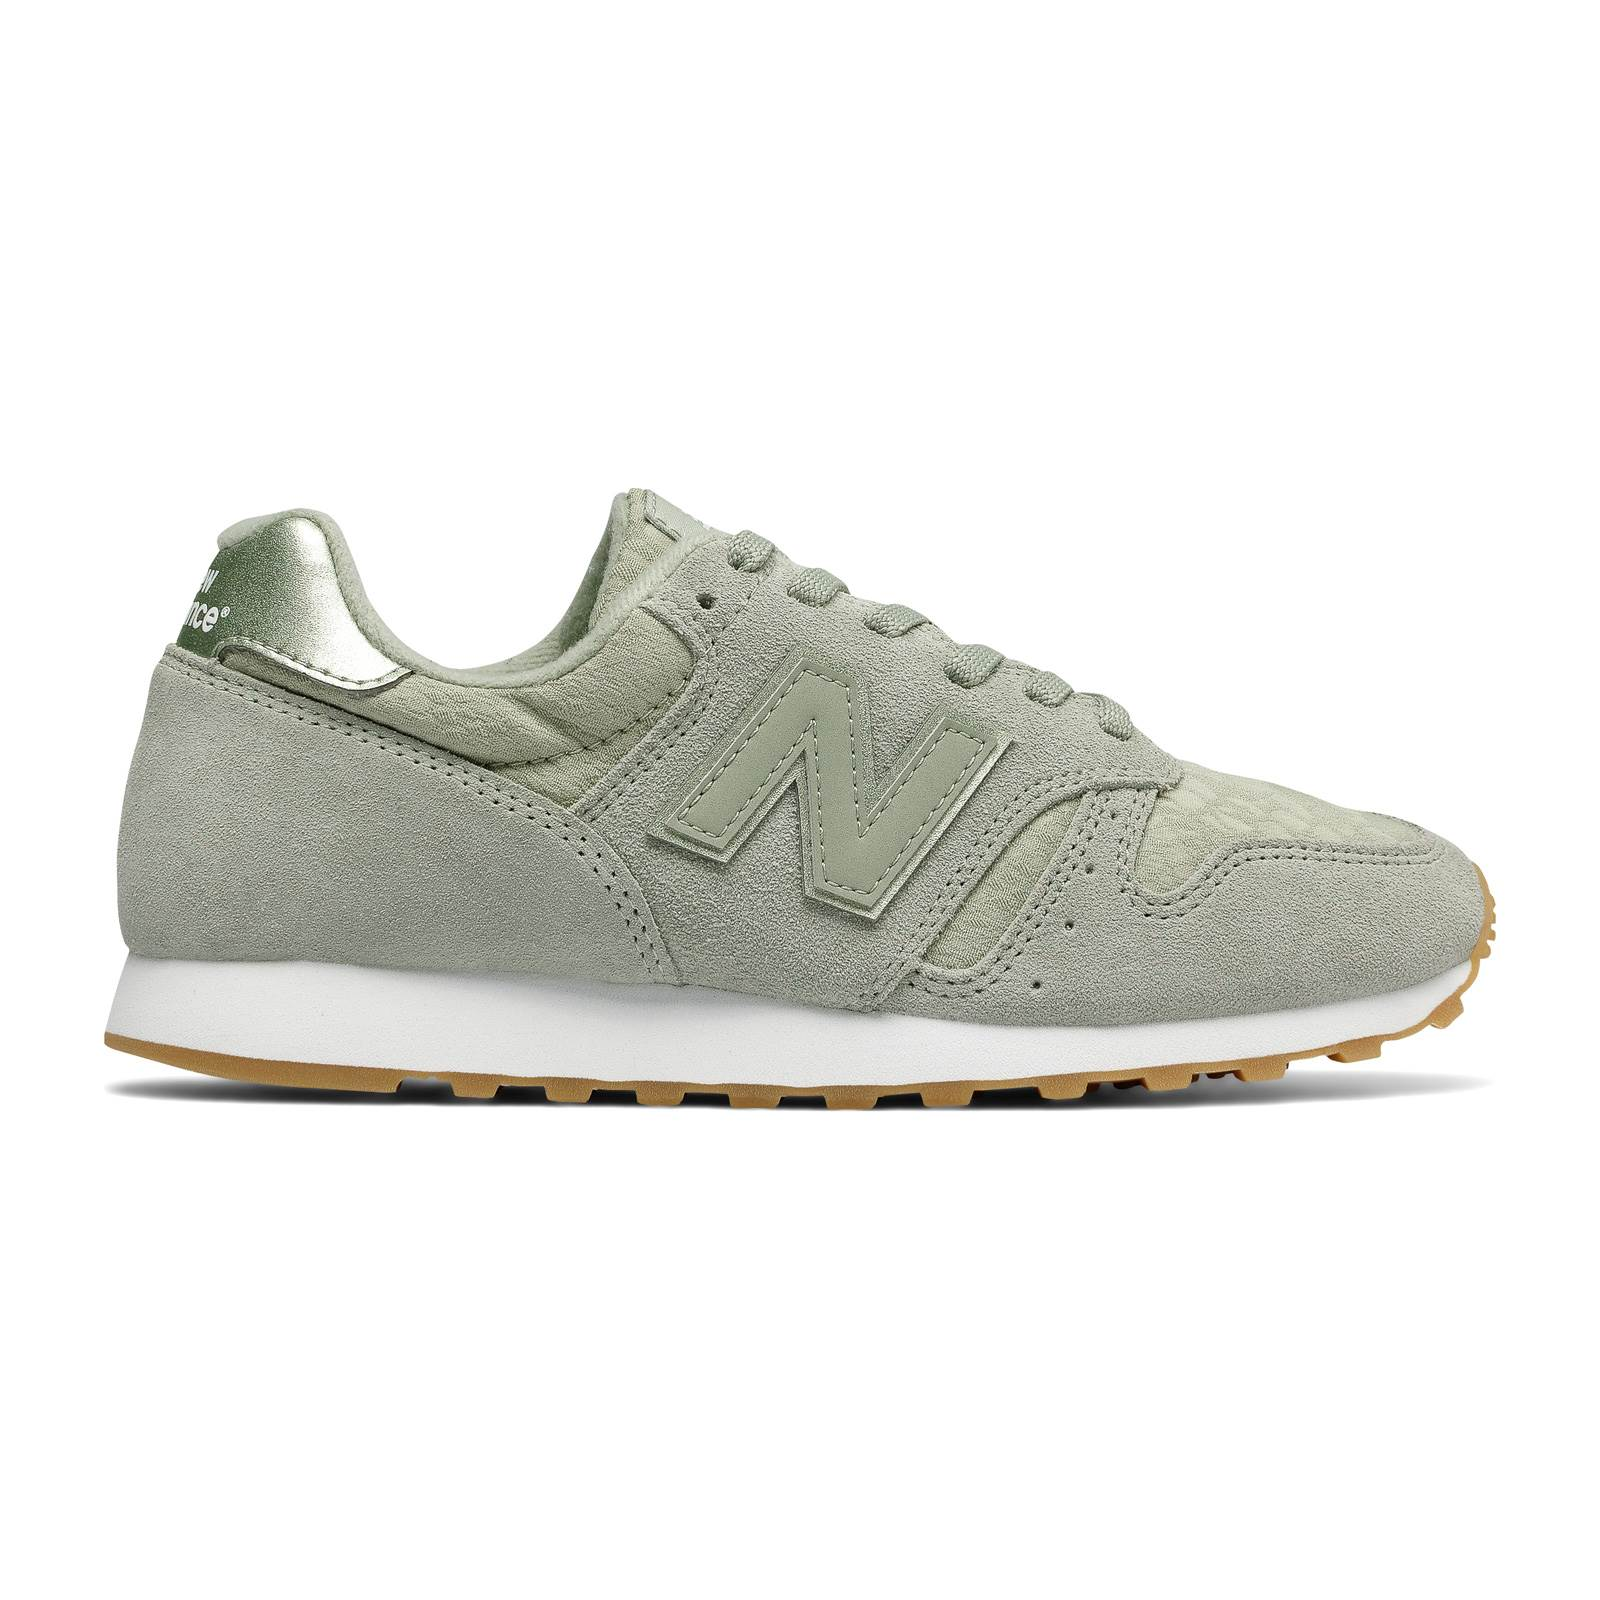 New Balance WL373 - Baskets en cuir - menthe